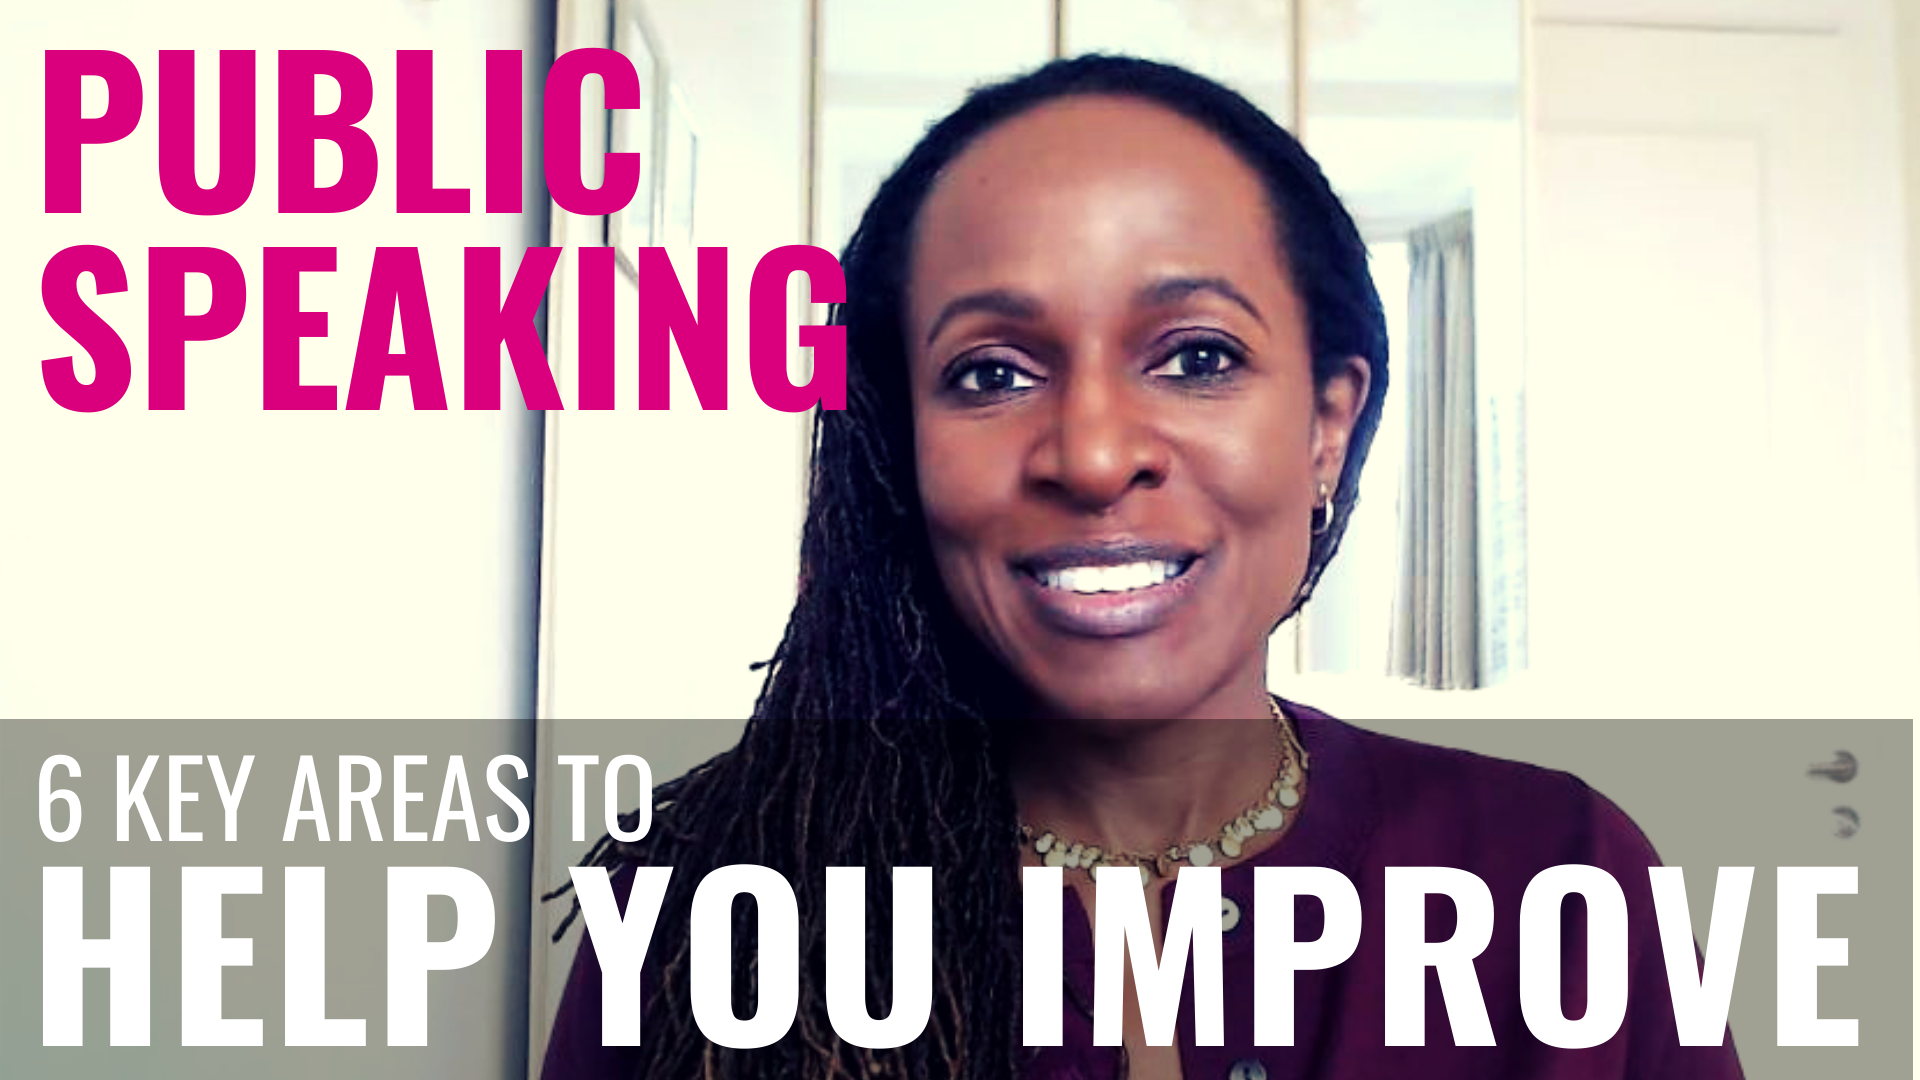 PUBLIC SPEAKING – 6 Key Areas to HELP YOU IMPROVE